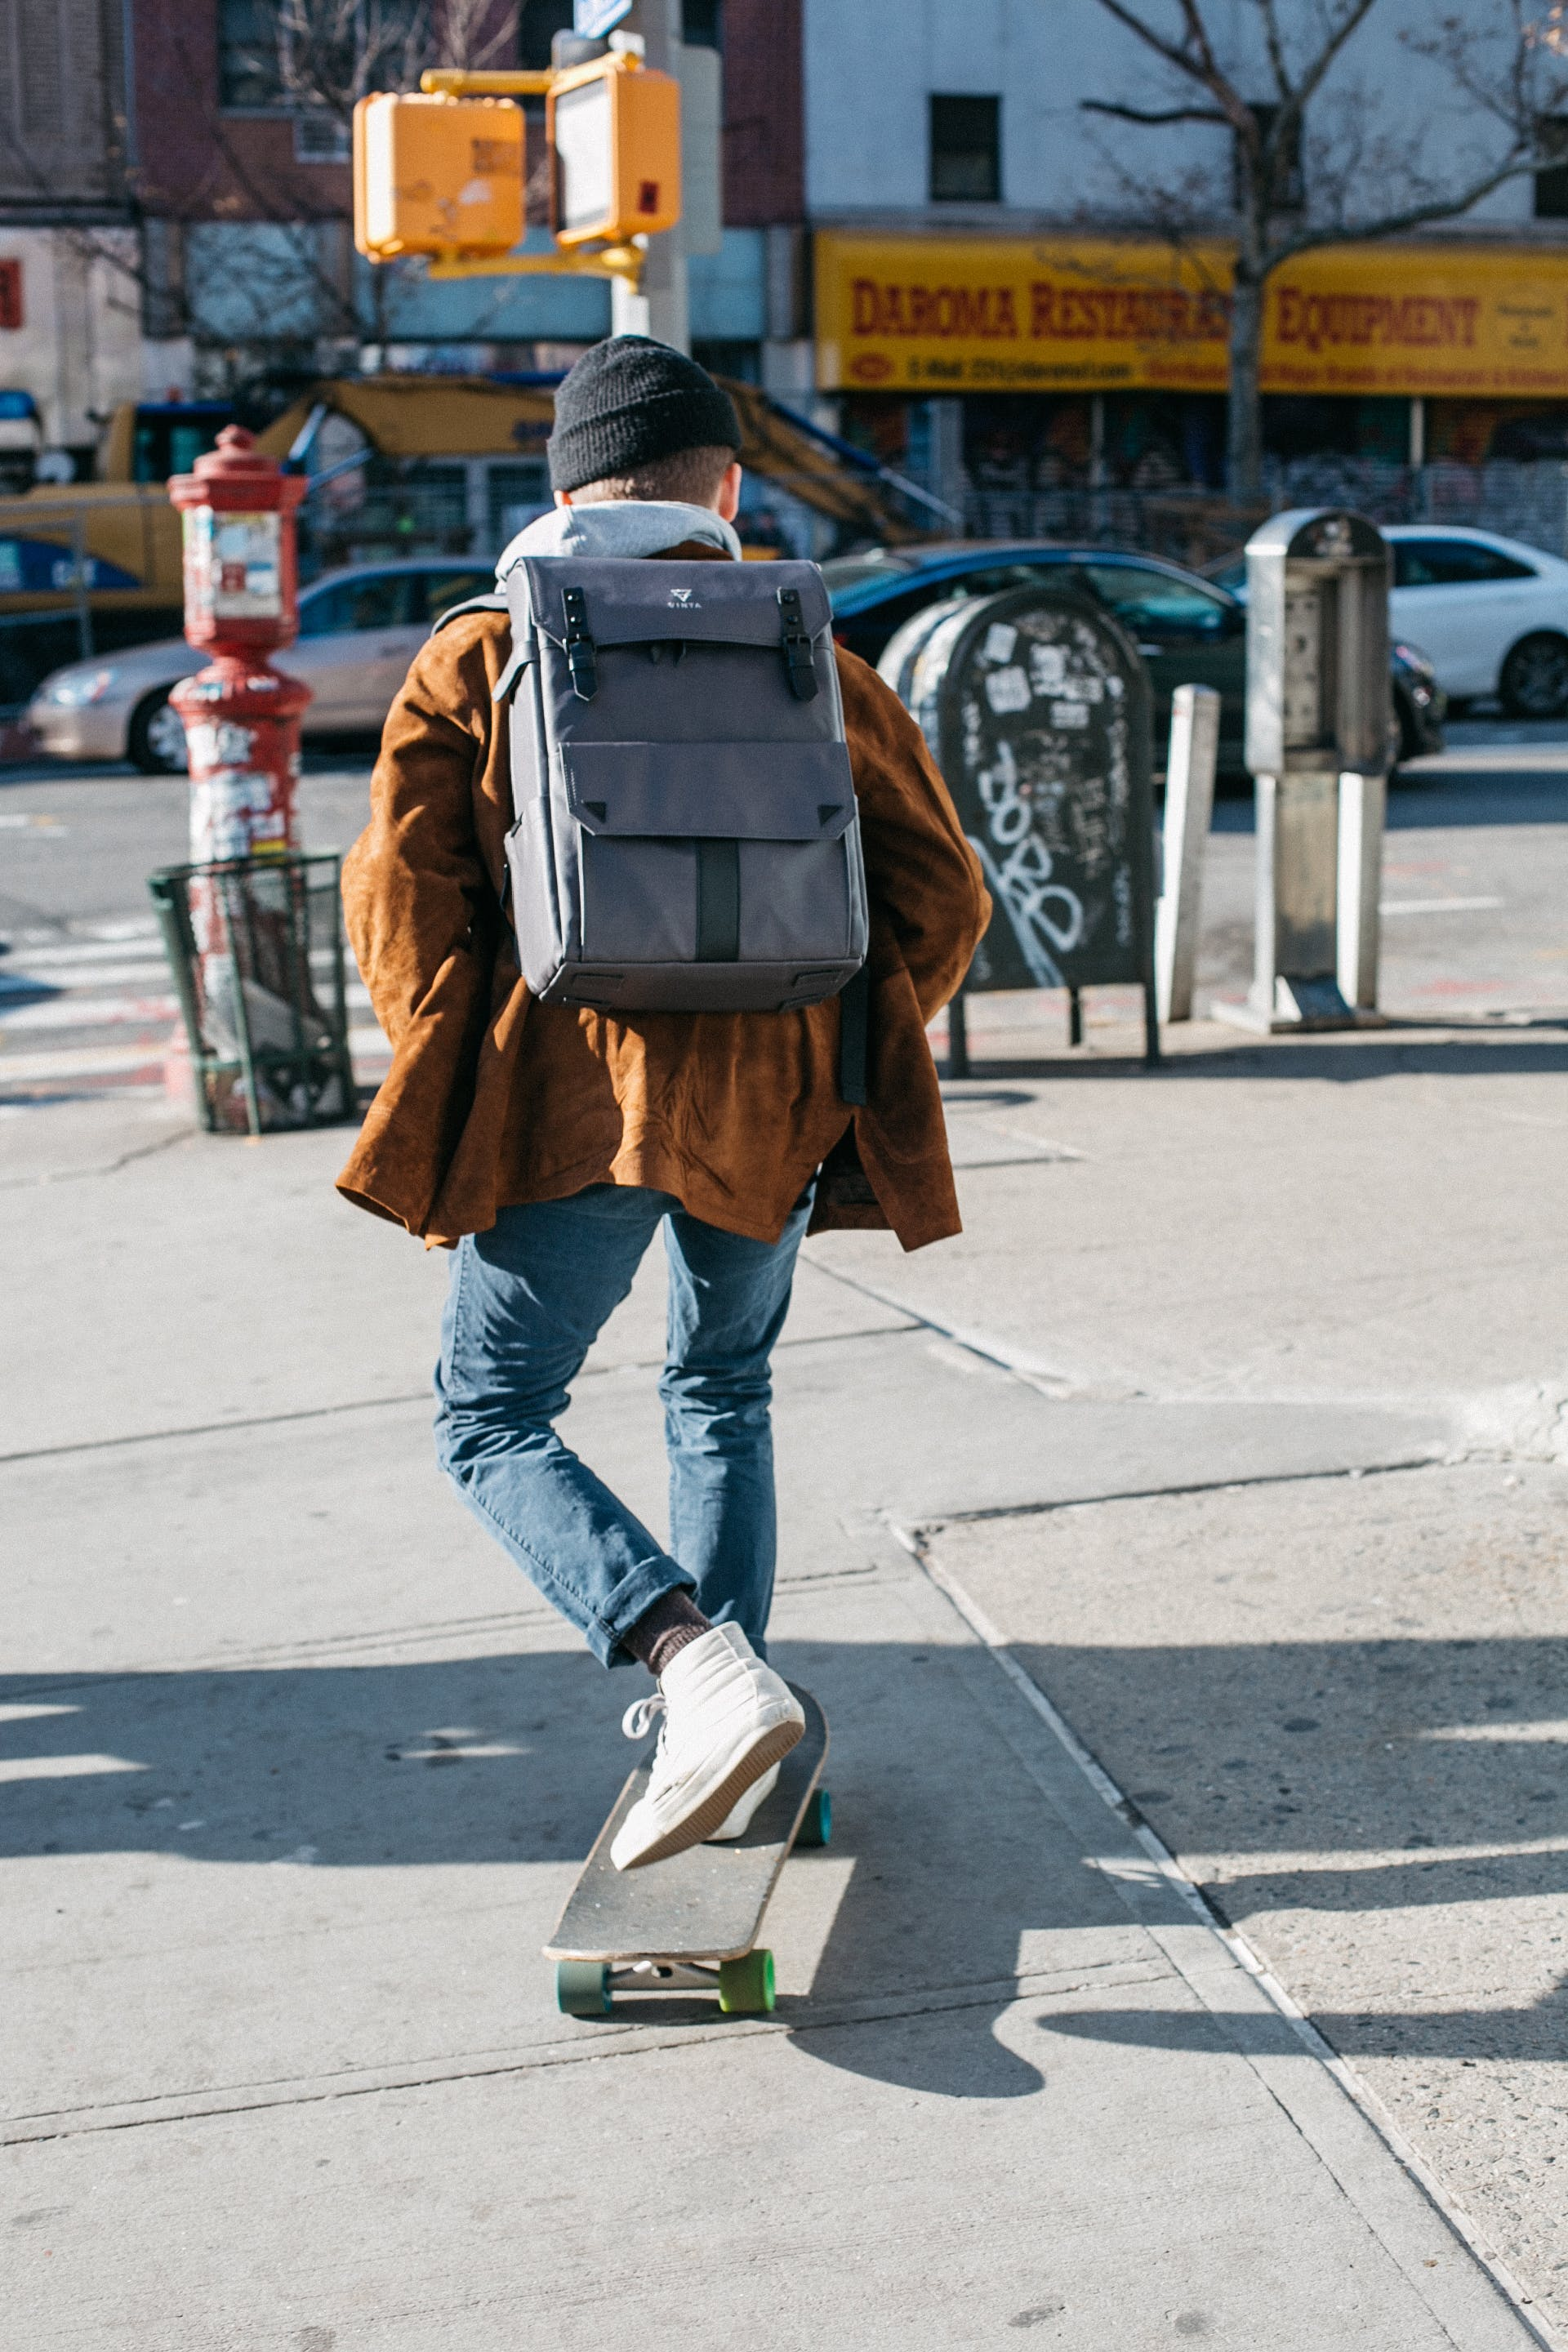 Man Wearing Brown Jacket, Blue Denim Jeans, and White Shoes Riding Skateboard on Sideway